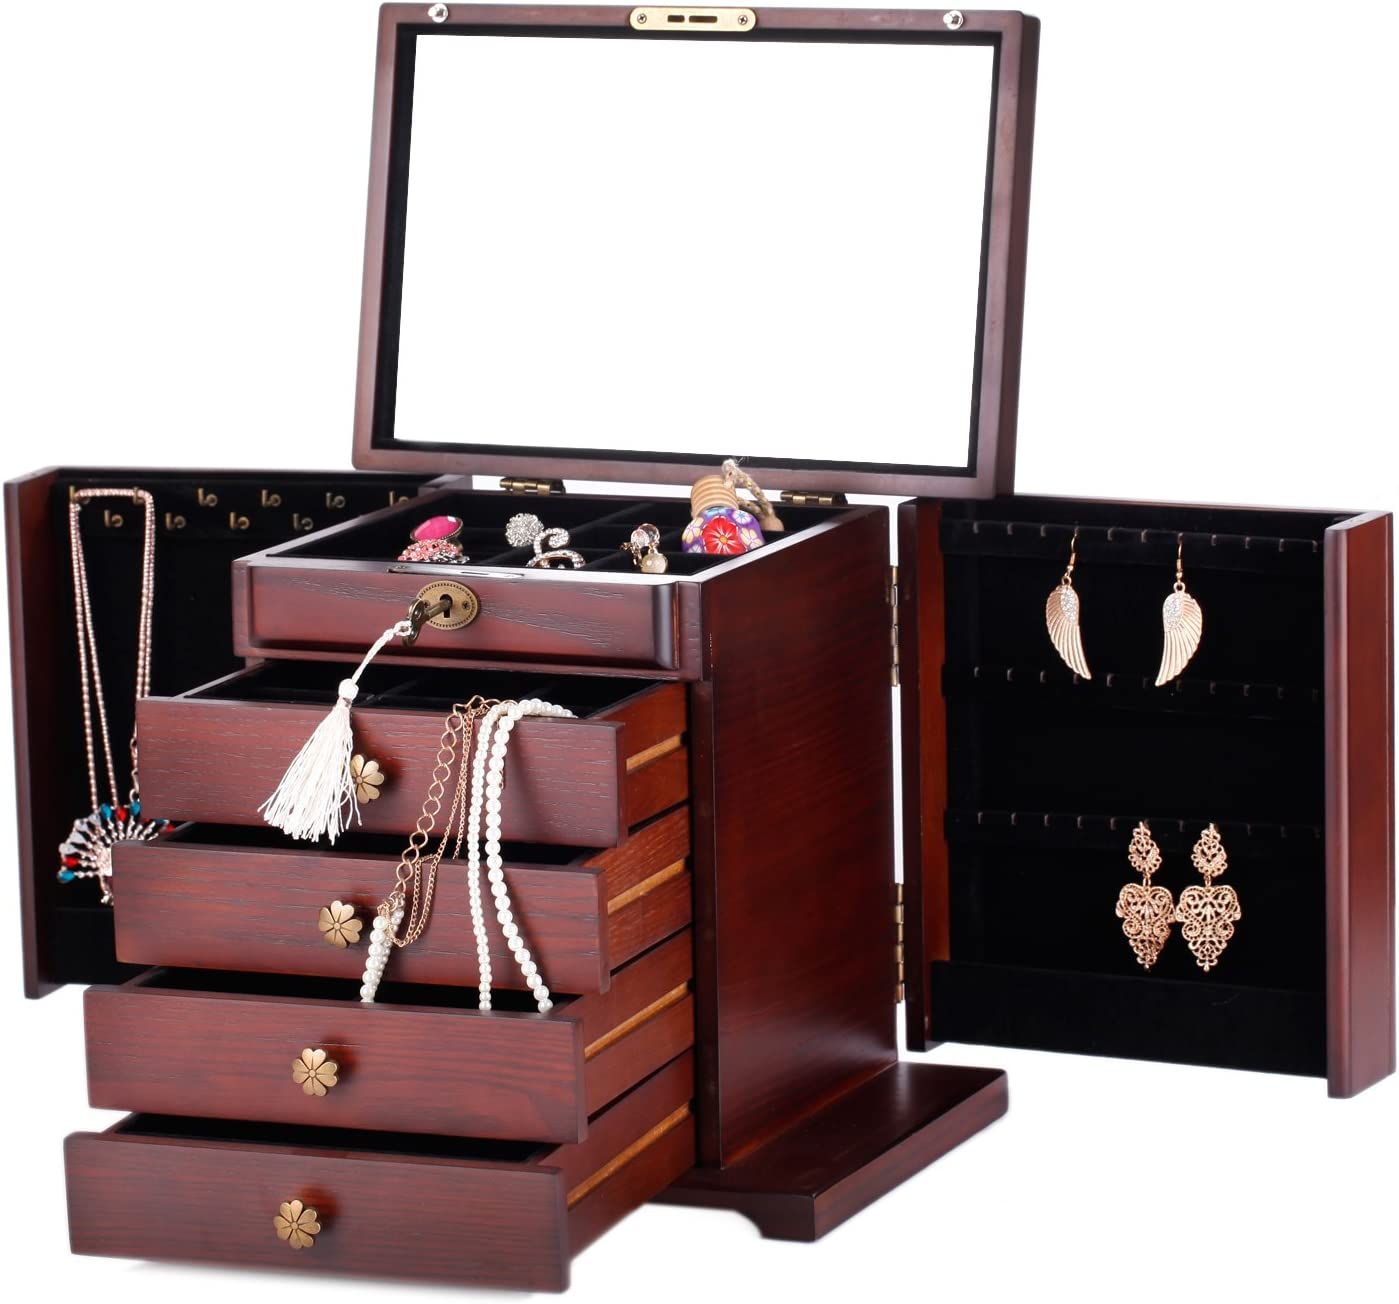 Extra Large Wooden Jewelry Box/Jewel Case Cabinet Armoire